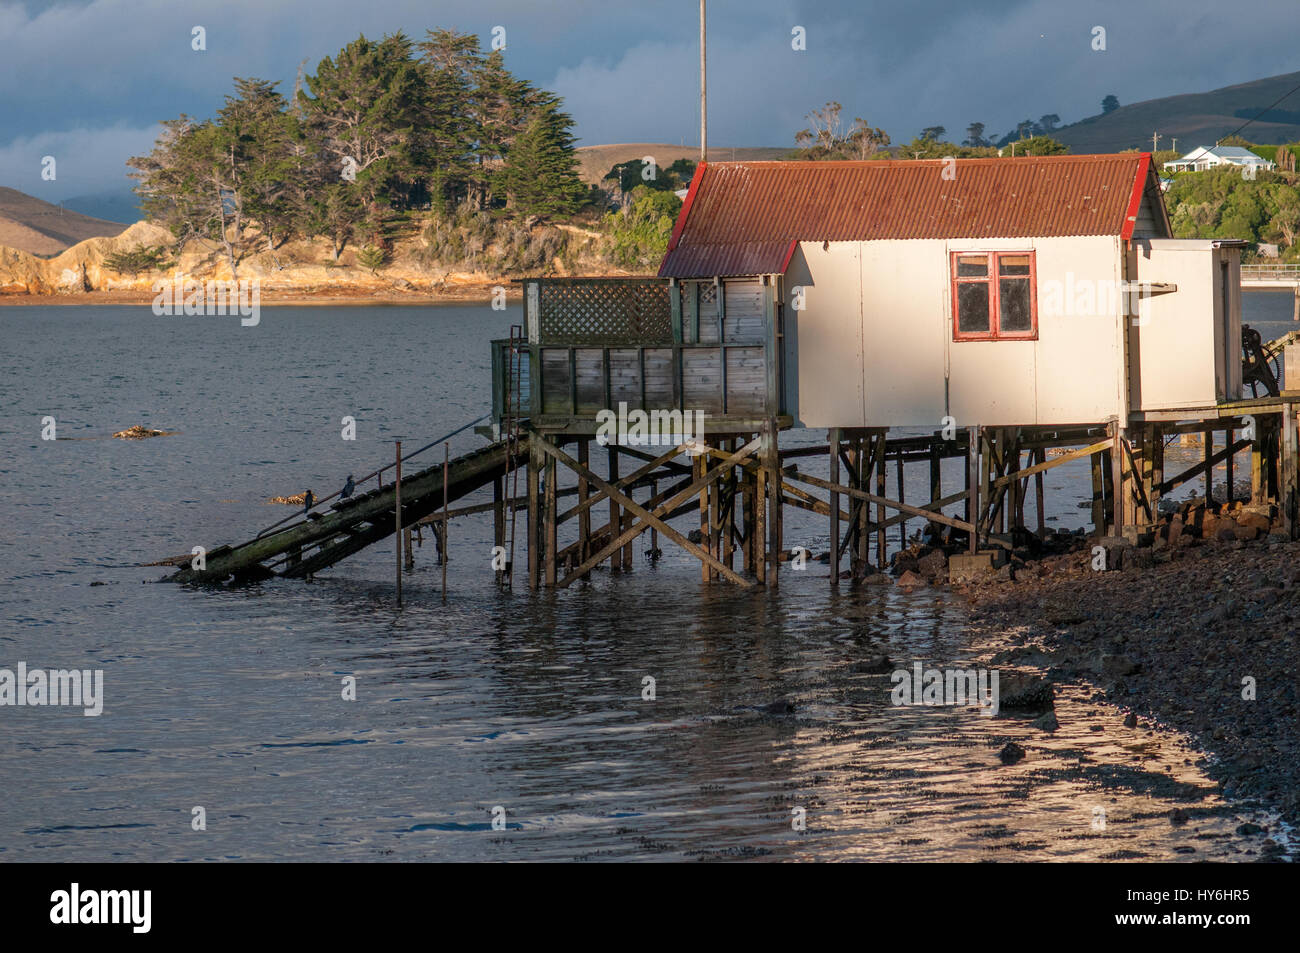 Boat houses at Otago Peninsula and Otago Harbour during sunset east of Dunedin, New Zealand - Stock Image